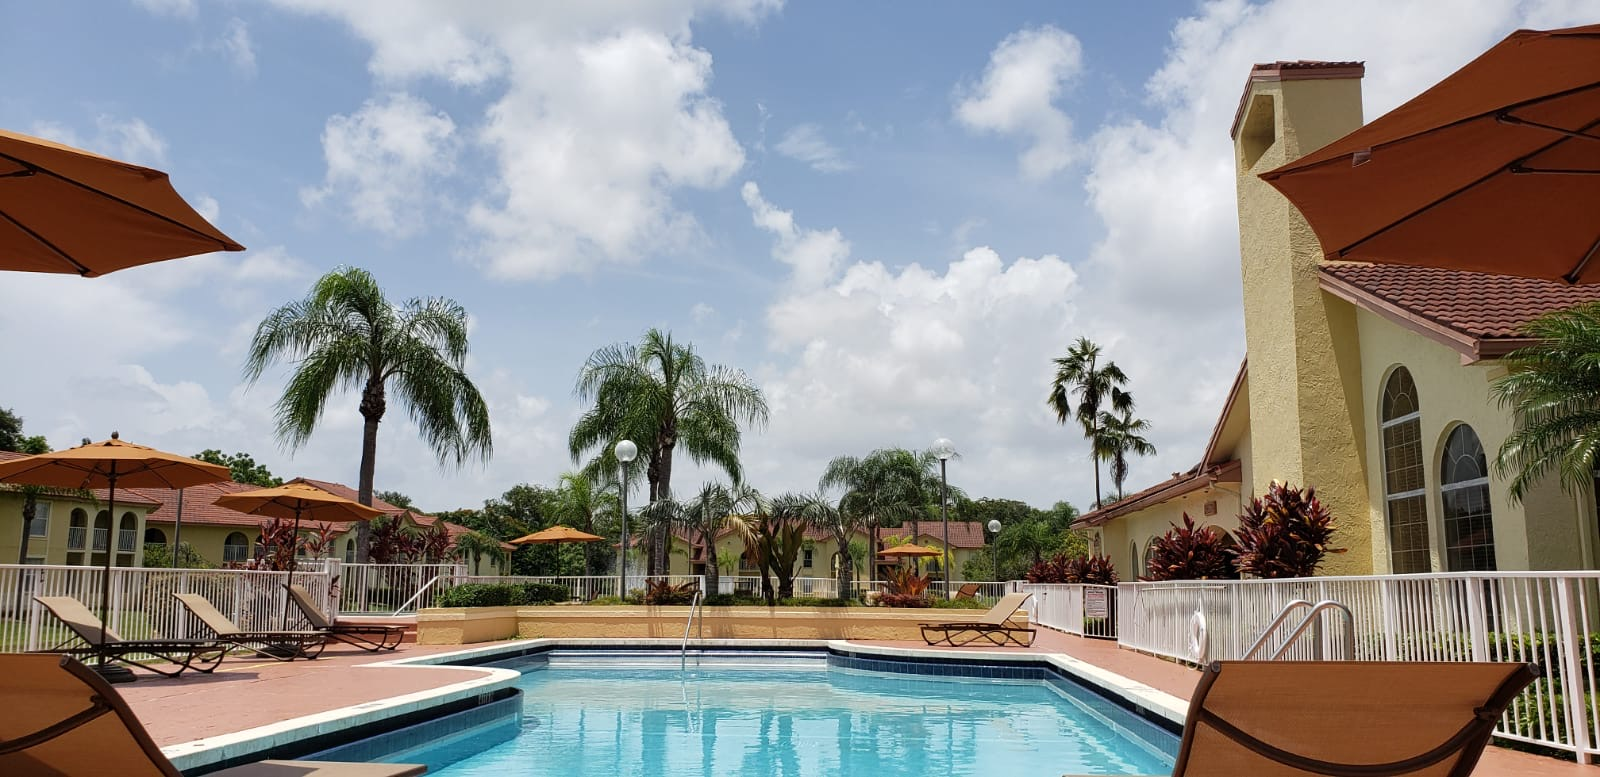 Sparkling Pool at Pepper Cove Apartments in Miami, FL